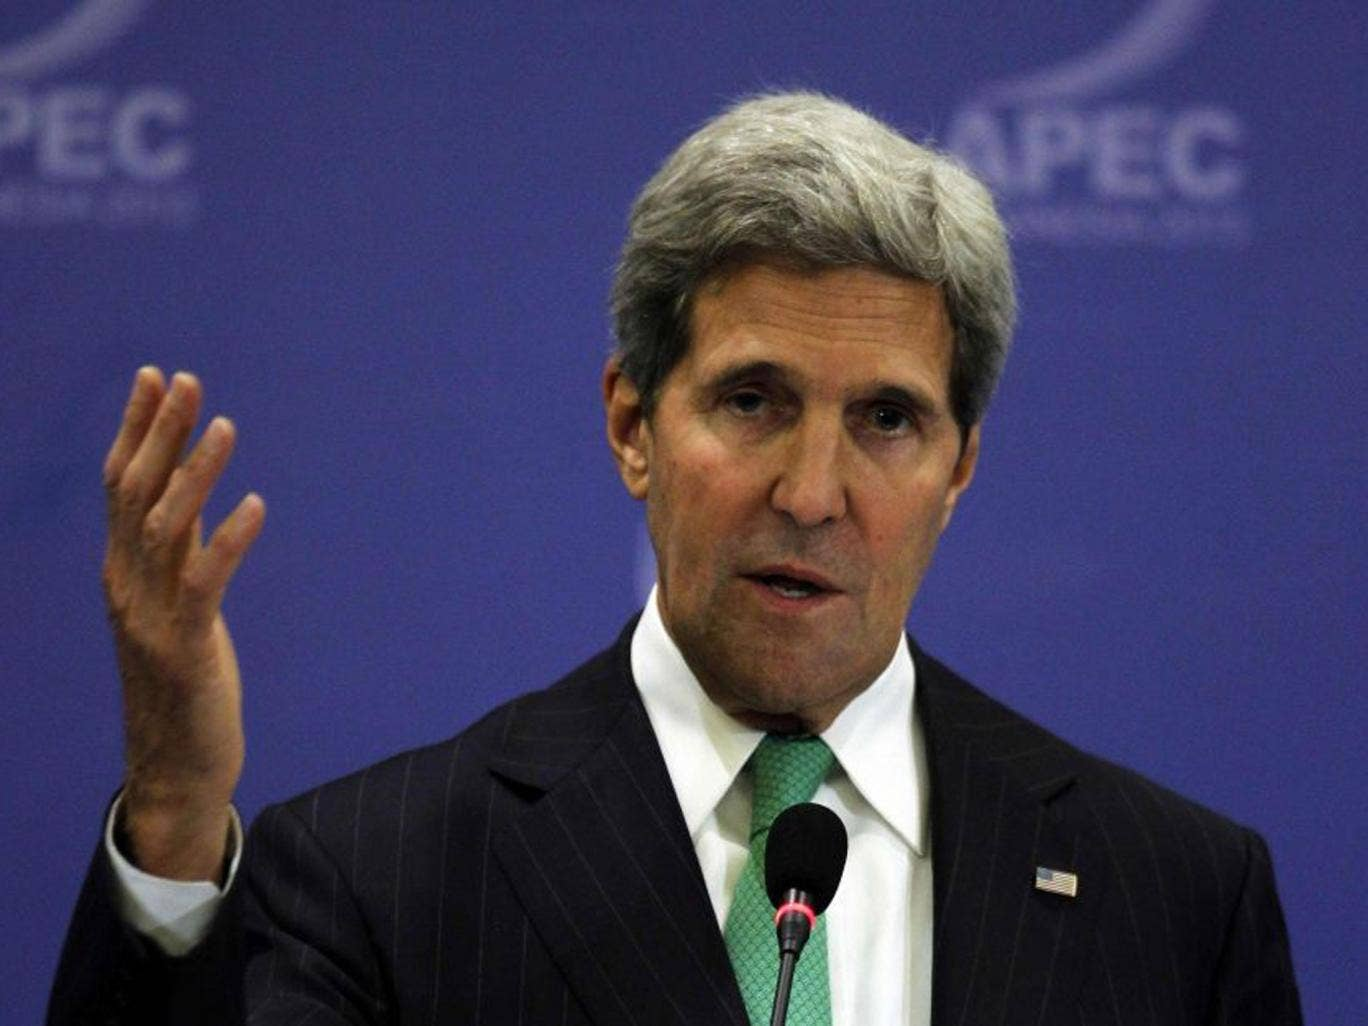 Kerry: Condemned 'political silliness'